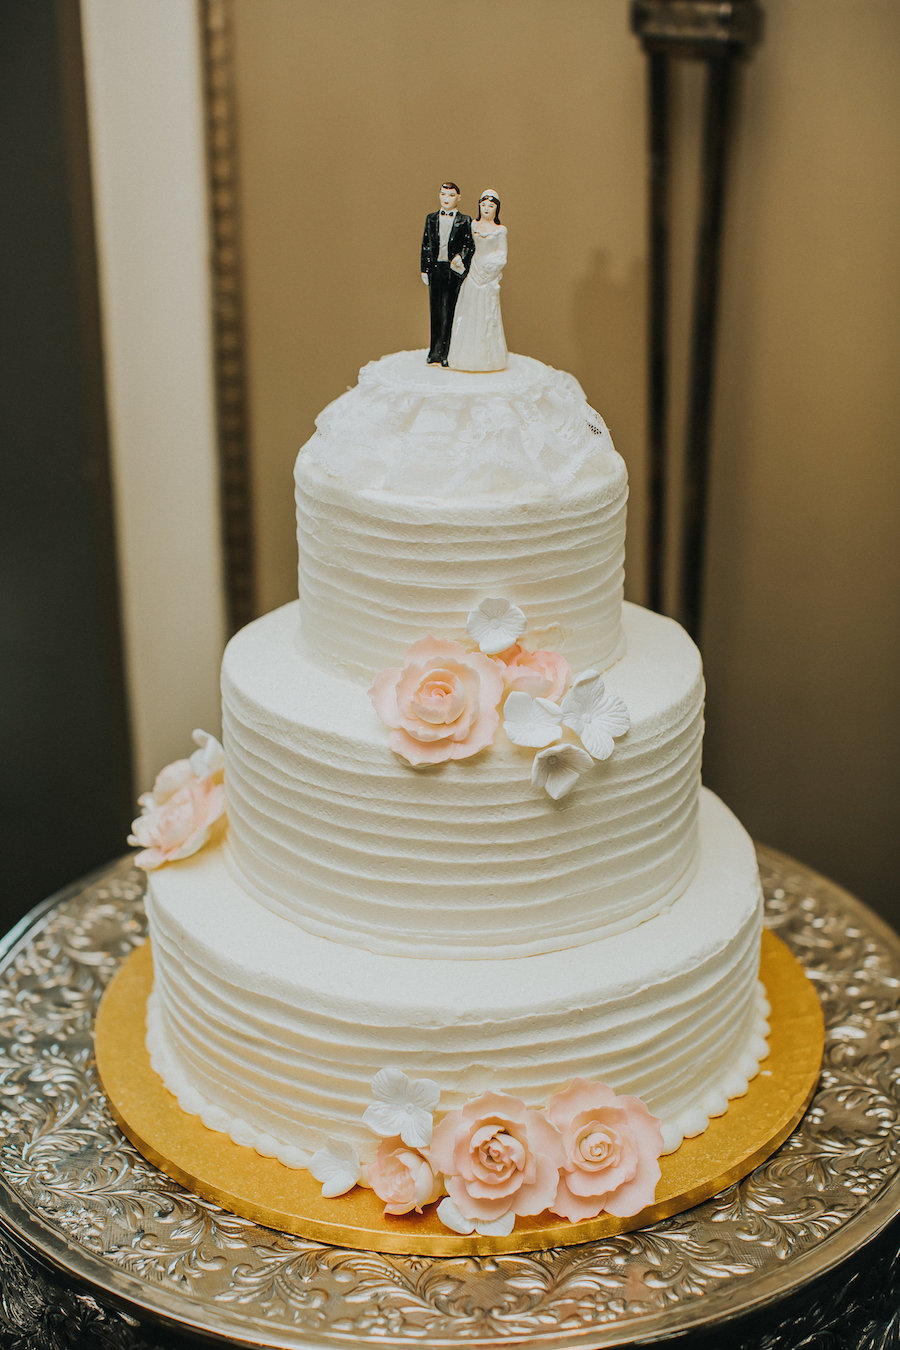 Traditional Buttercream Texture White Wedding Cake with Pink Sugar Roses and Bride and Groom Cake Topper